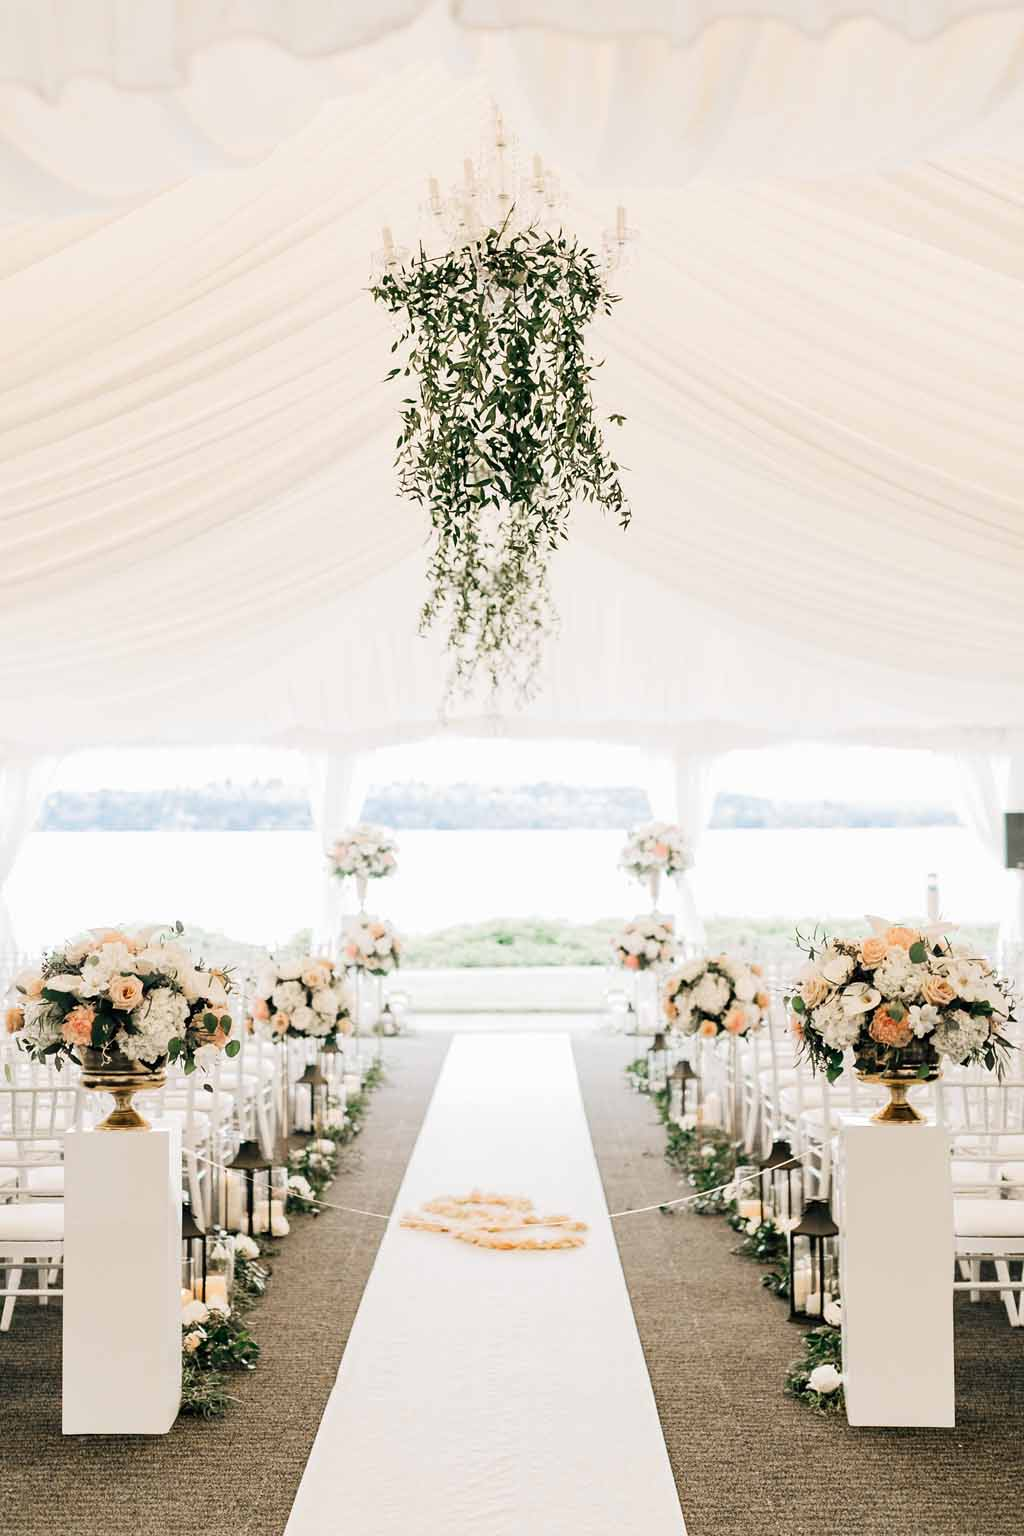 Wedding aisle lined with flowers and greenery chandelier for Lake Washington Wedding - by Flora Nova Design